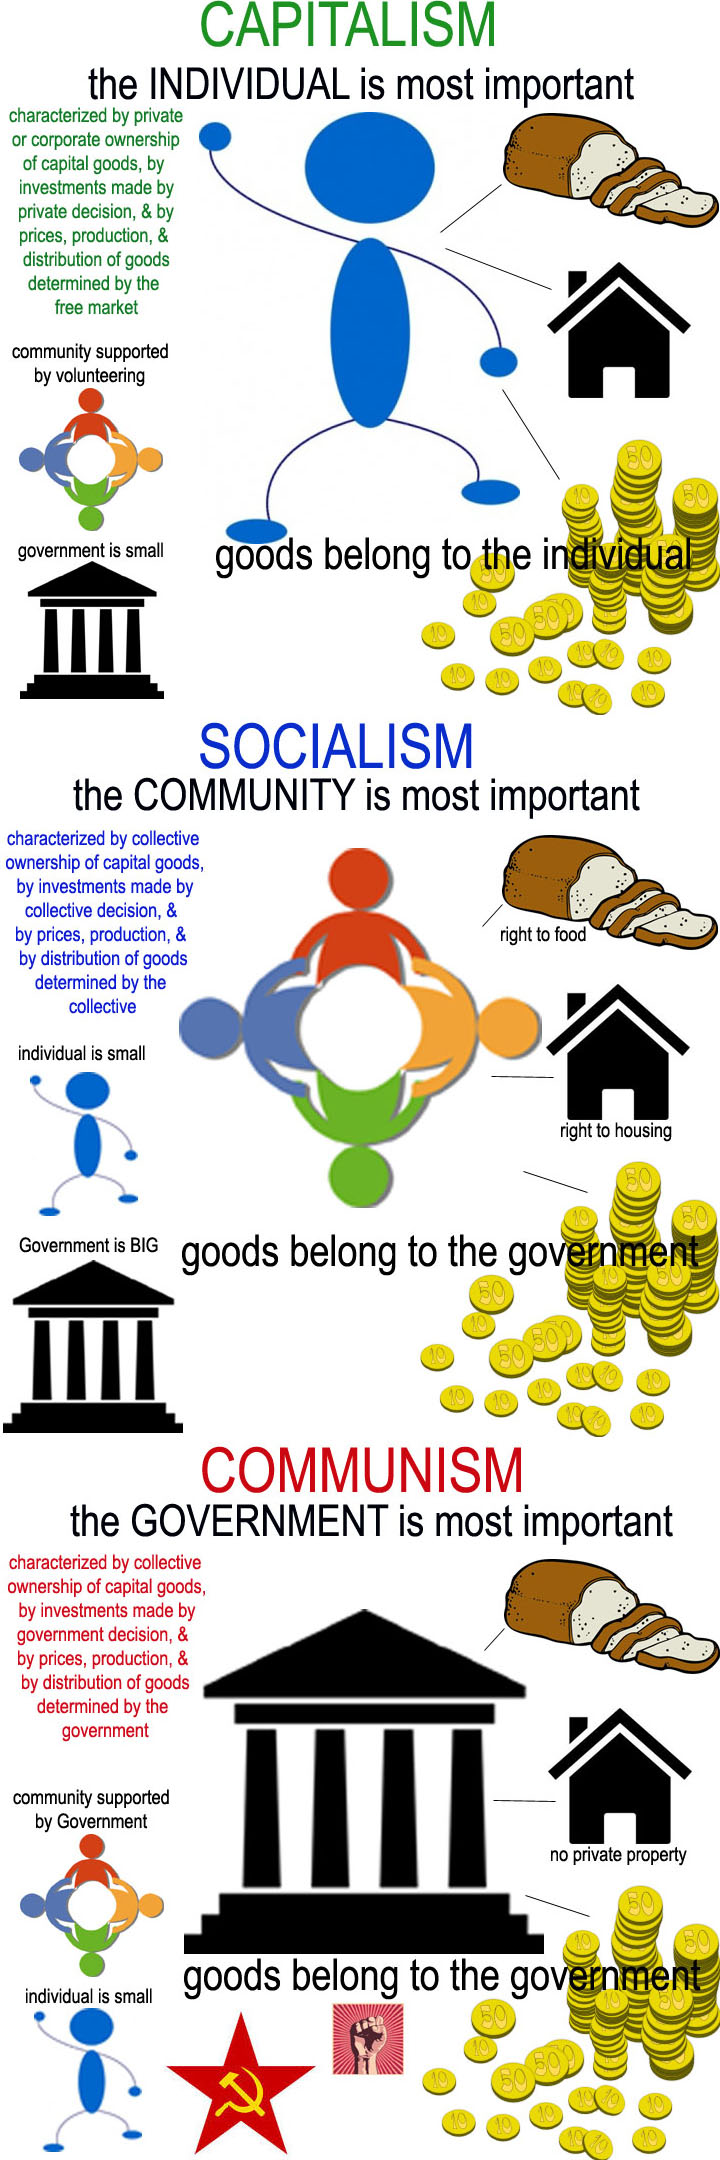 Understanding the differences between capitalism socialism understanding the differences between capitalism socialism communism construct is mine blisters clip art is others this example is proof of communism pooptronica Gallery